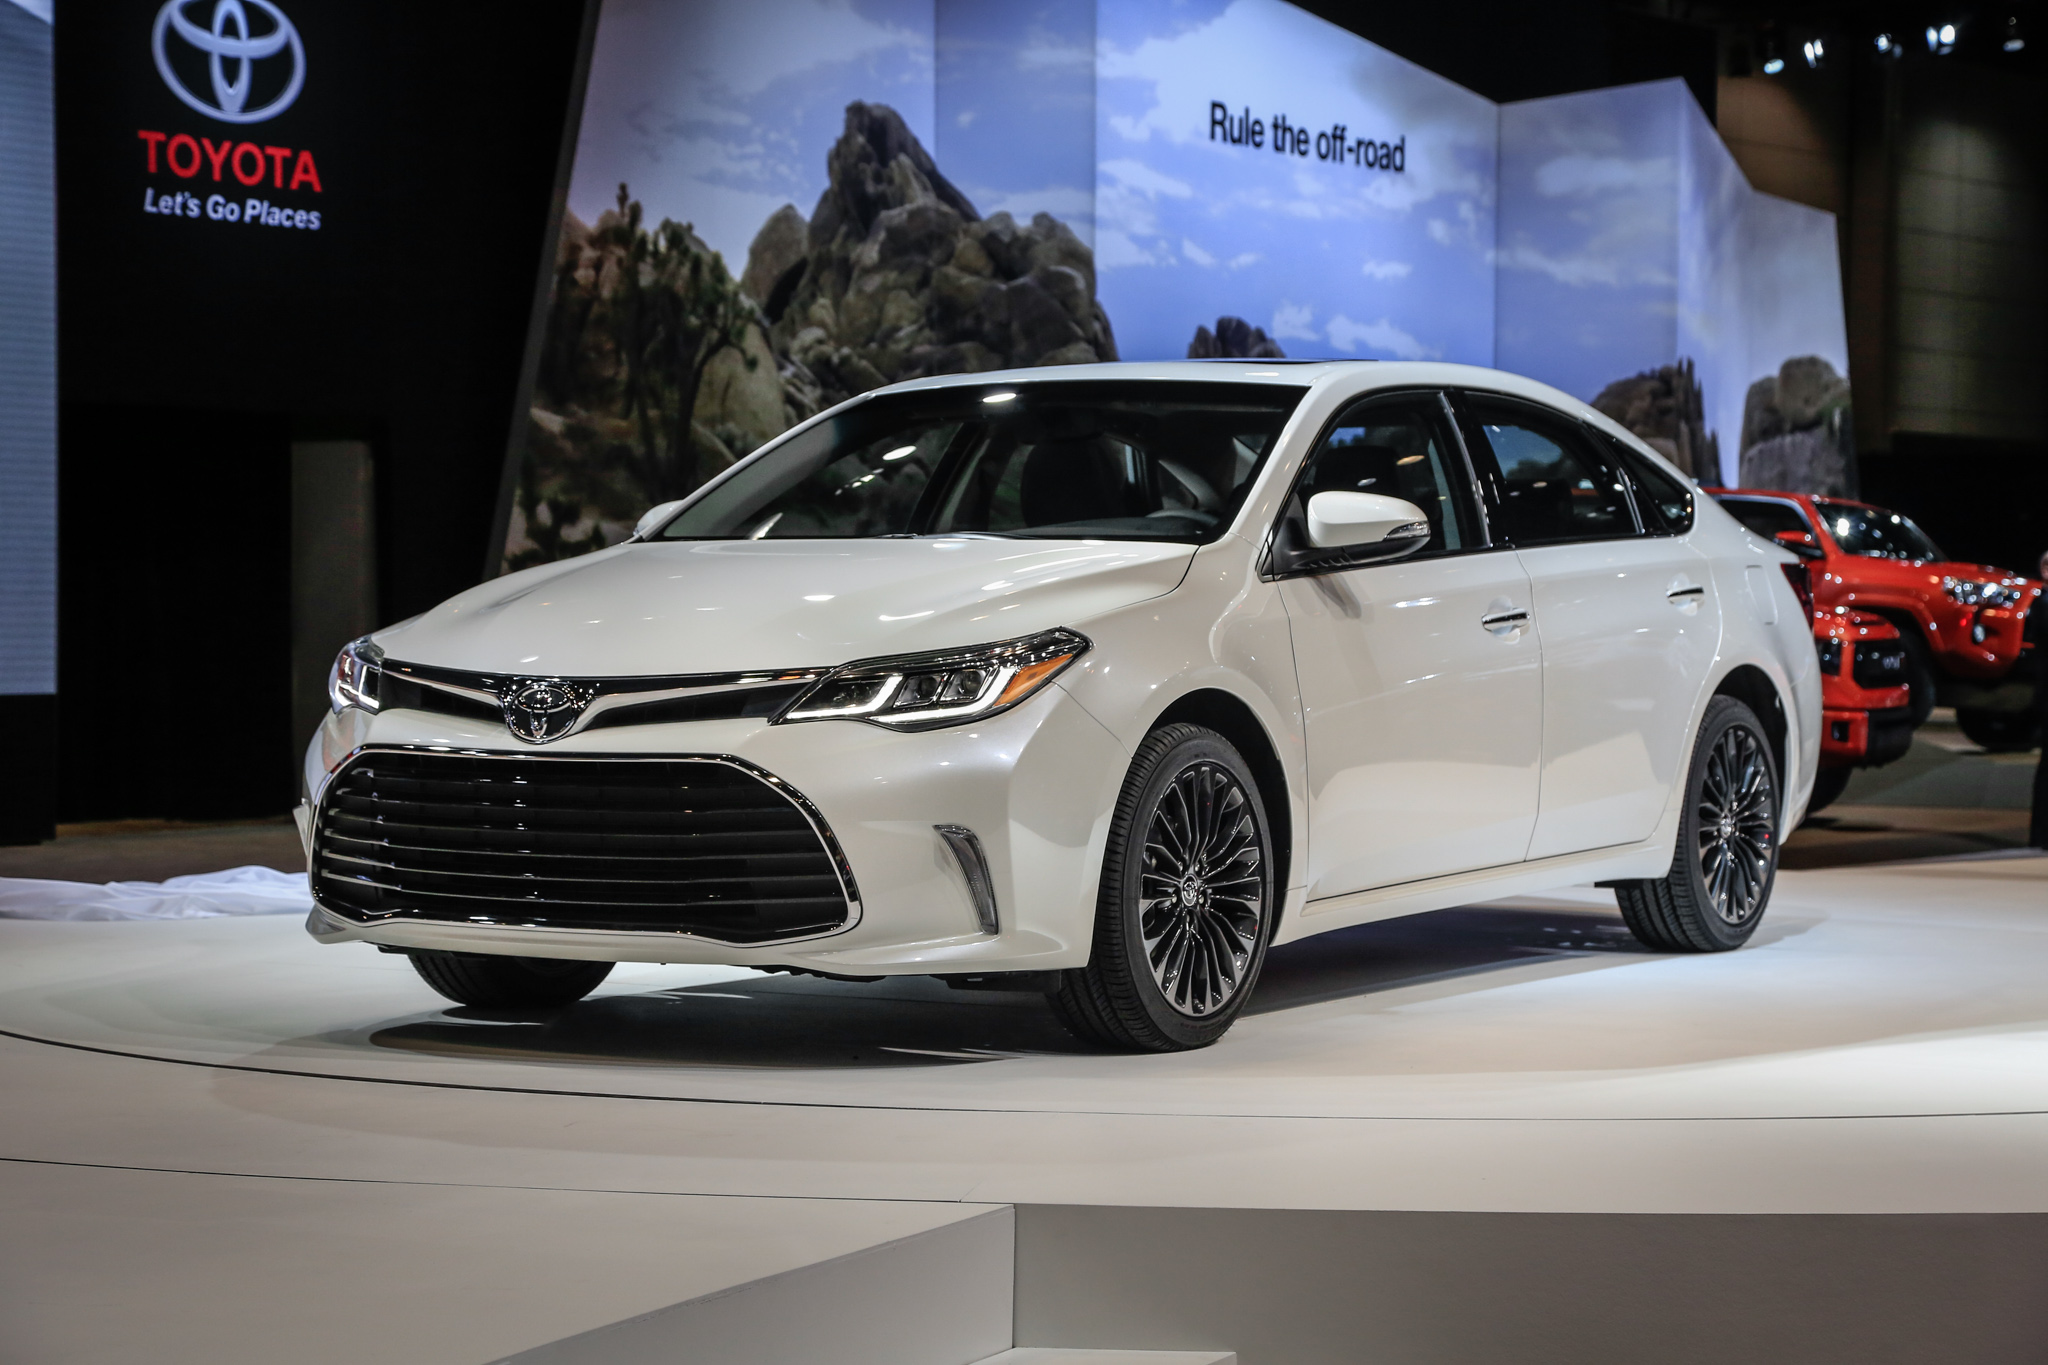 2016 Toyota Avalon First Look - Motor Trend